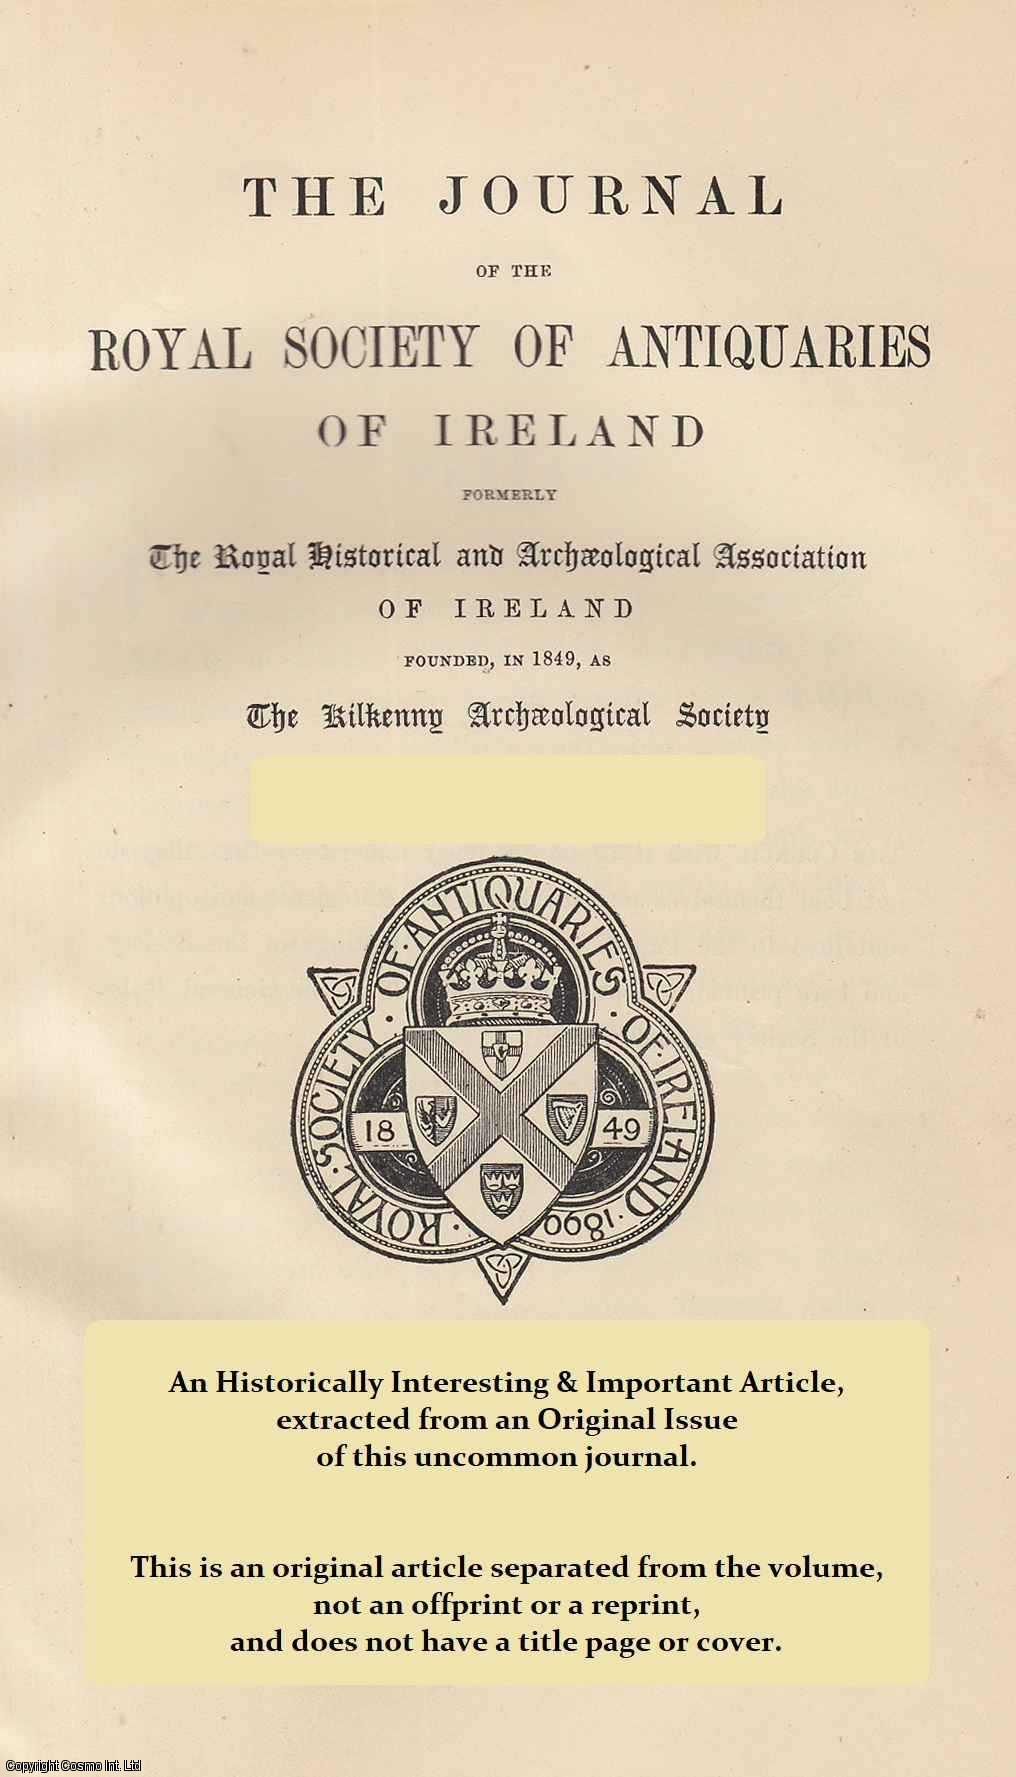 COFFEY, GEORGE - Find of Bronze Implements at Kilfeakle, County Tipperary. A rare original article from The Journal of the Royal Society of Antiquaries of Ireland, 1907.